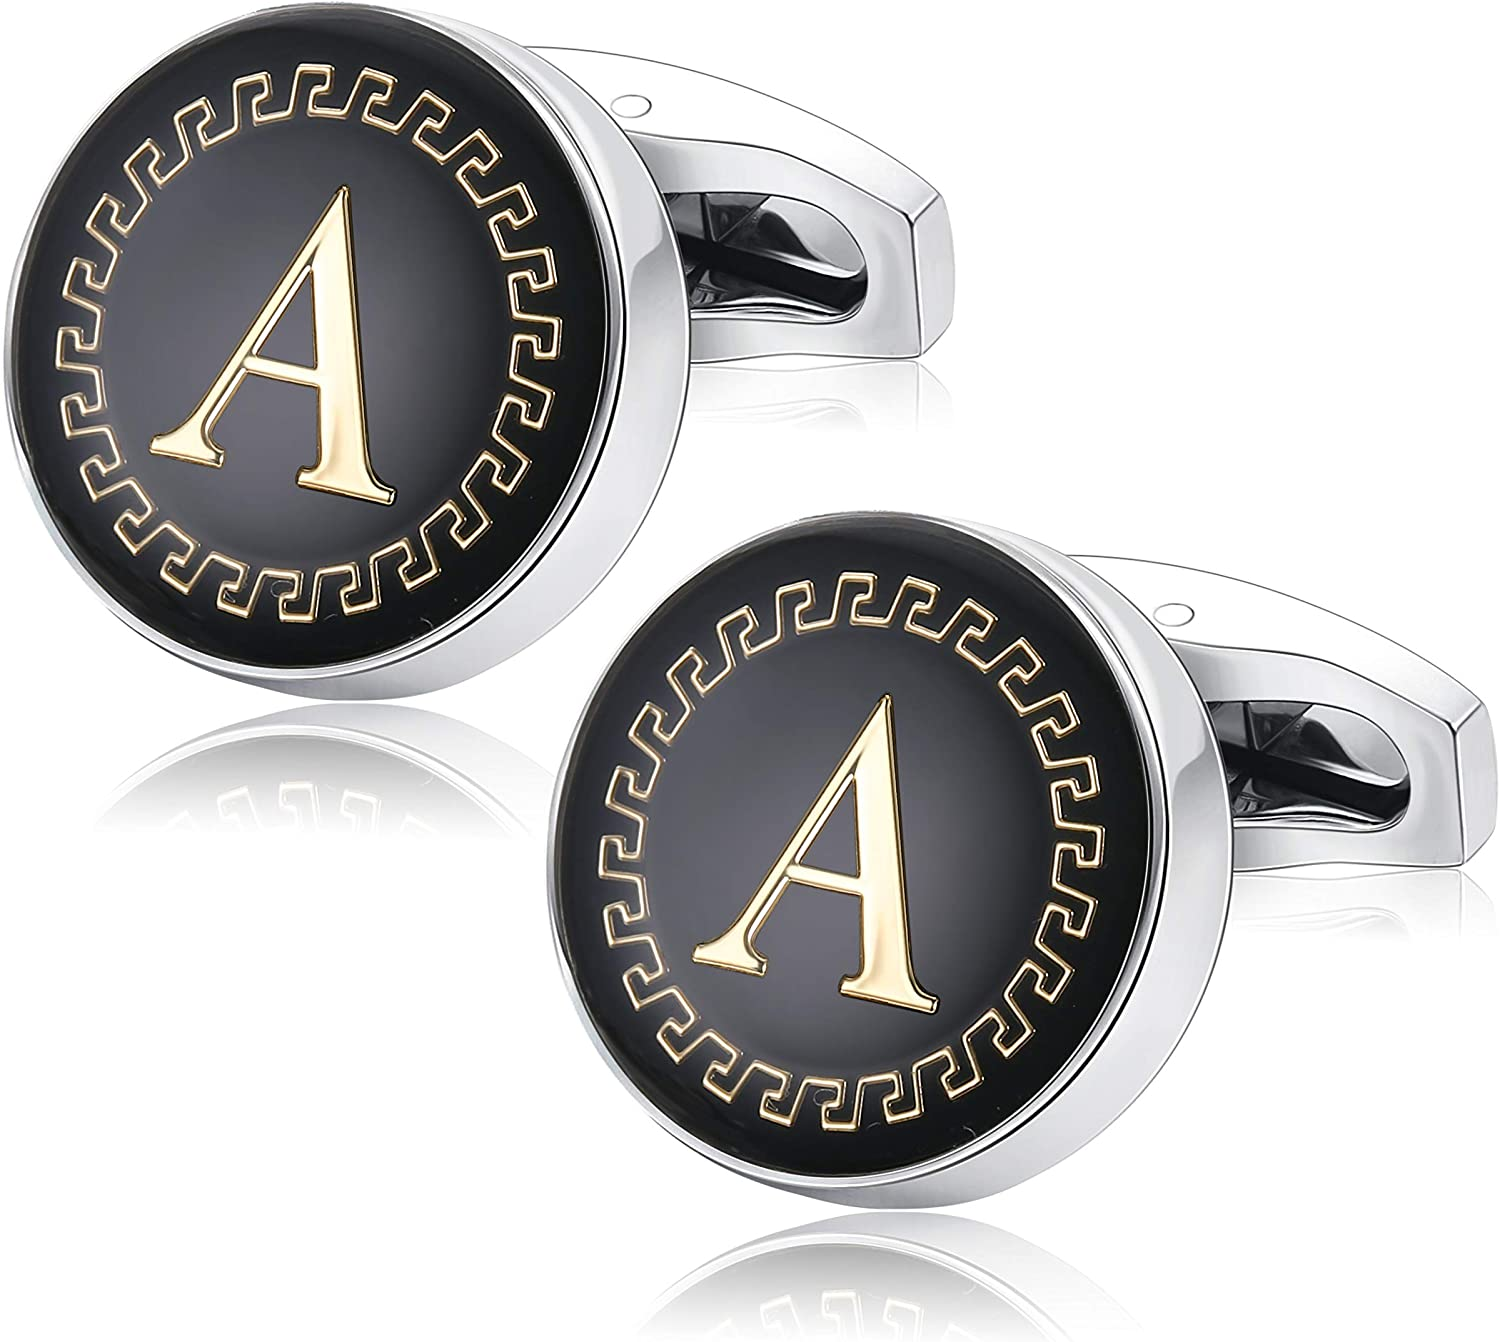 Udalyn Men's Fashion Stainless Steel Cufflinks Personalized 26 Alphabet Initial Letter Cufflinks Business Wedding Shirt Hanging A-Z